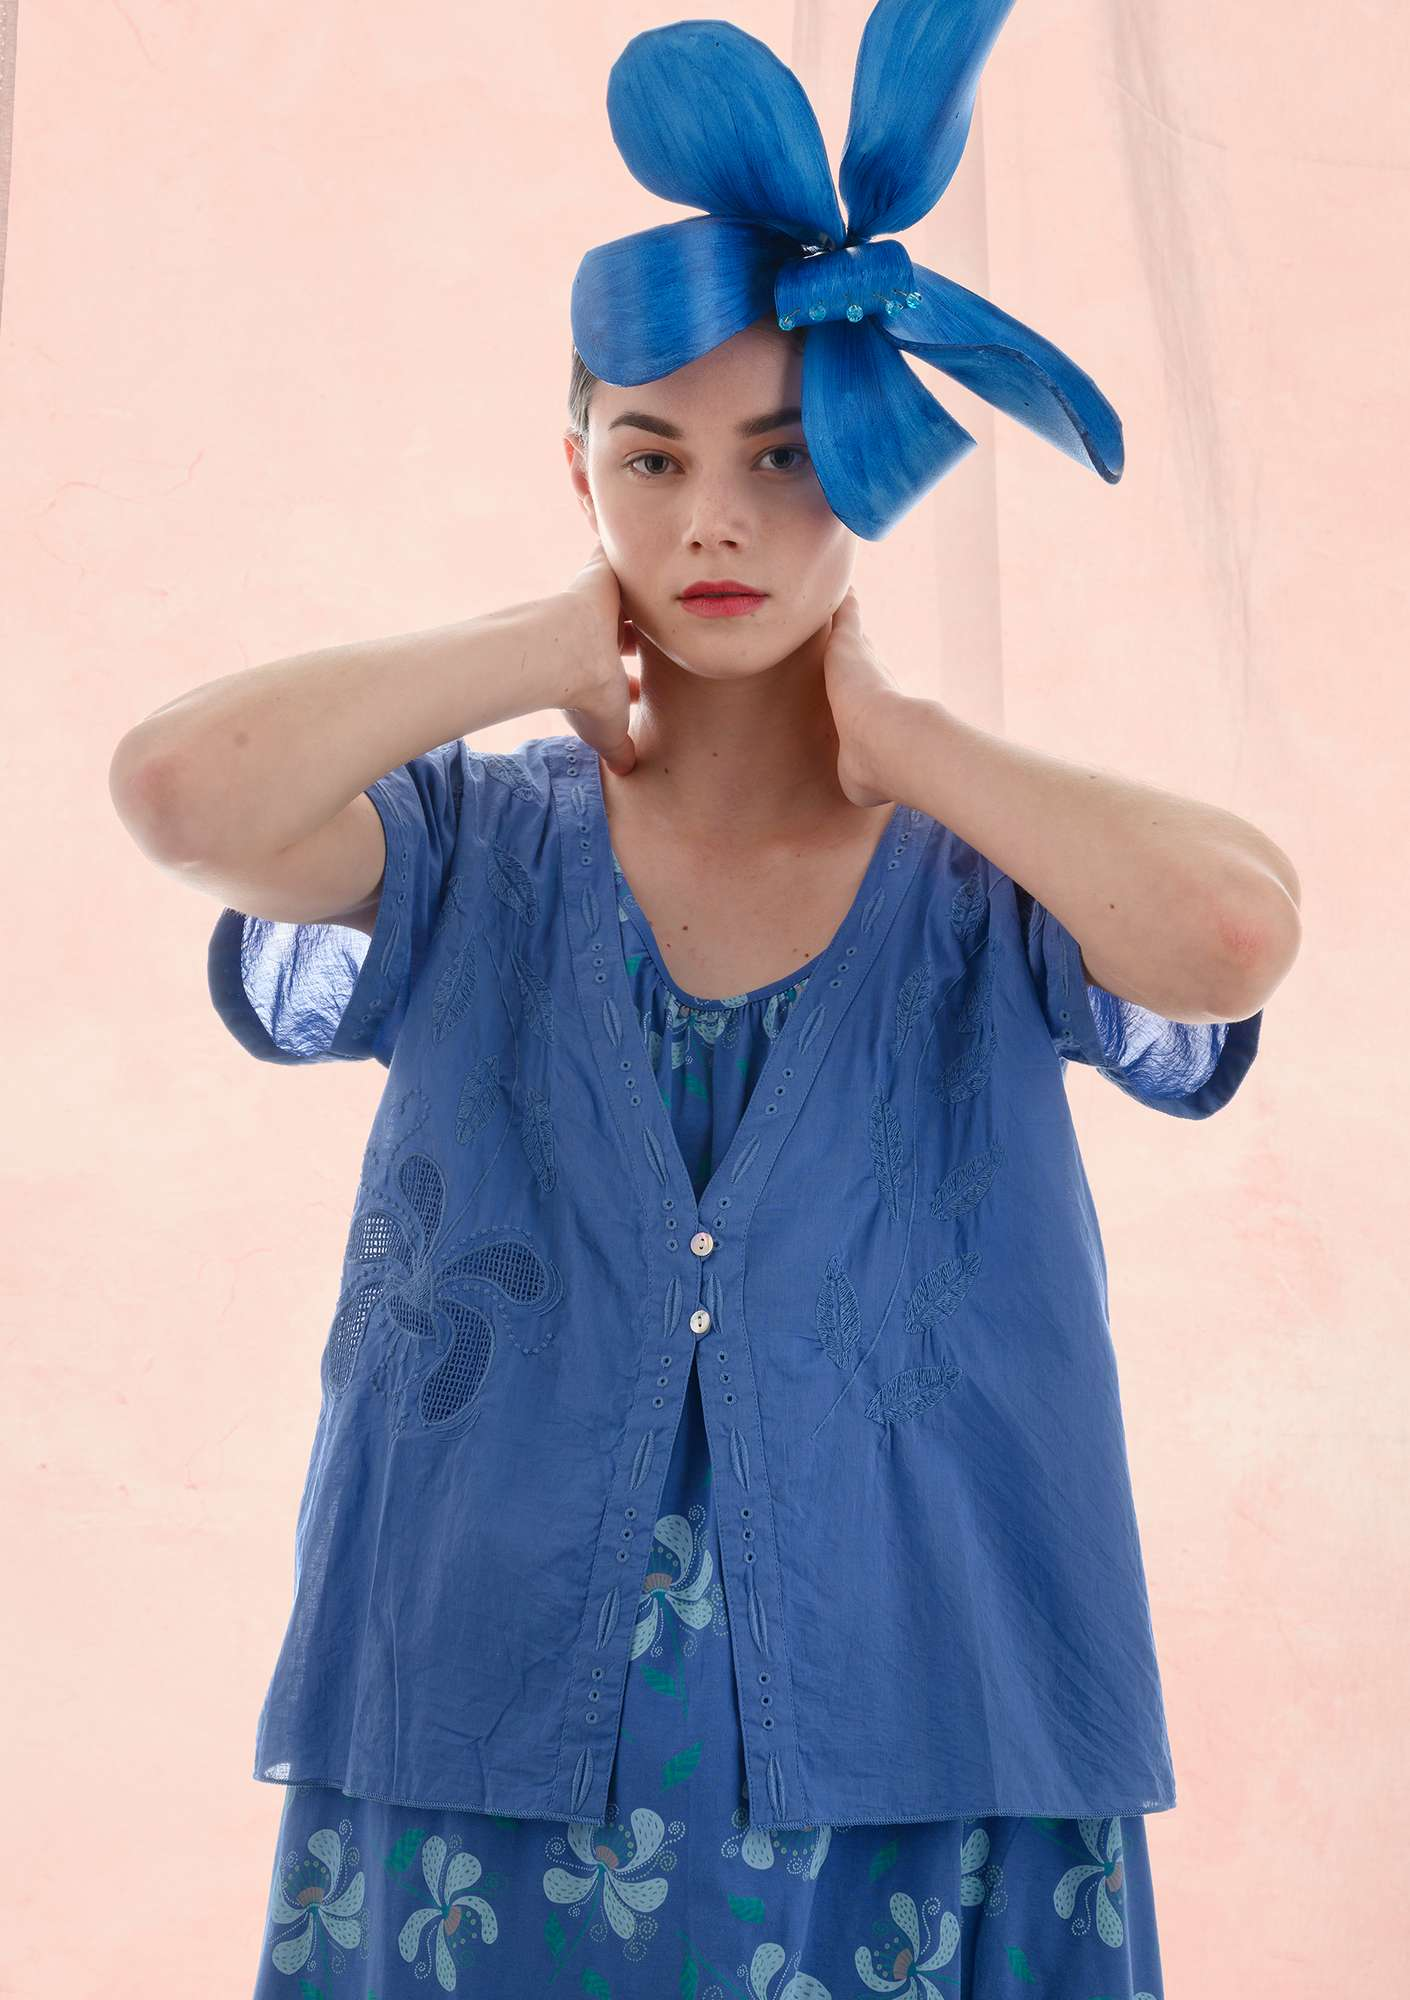 Fantasia blouse sky blue